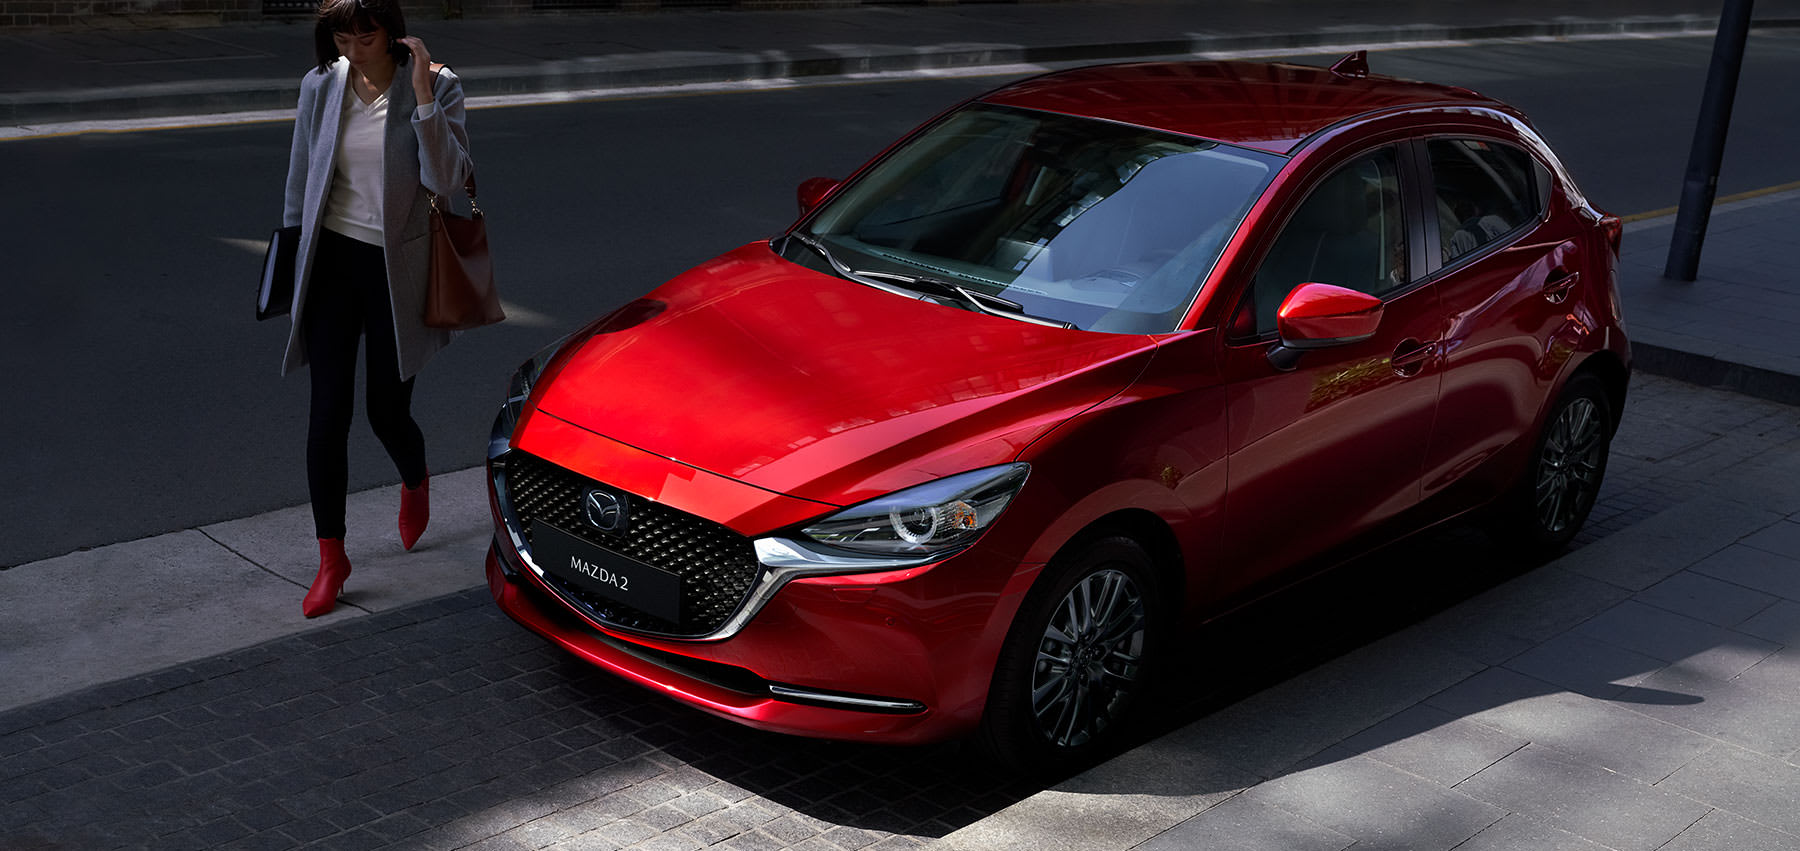 2020 Mazda 2 Redesign and Review